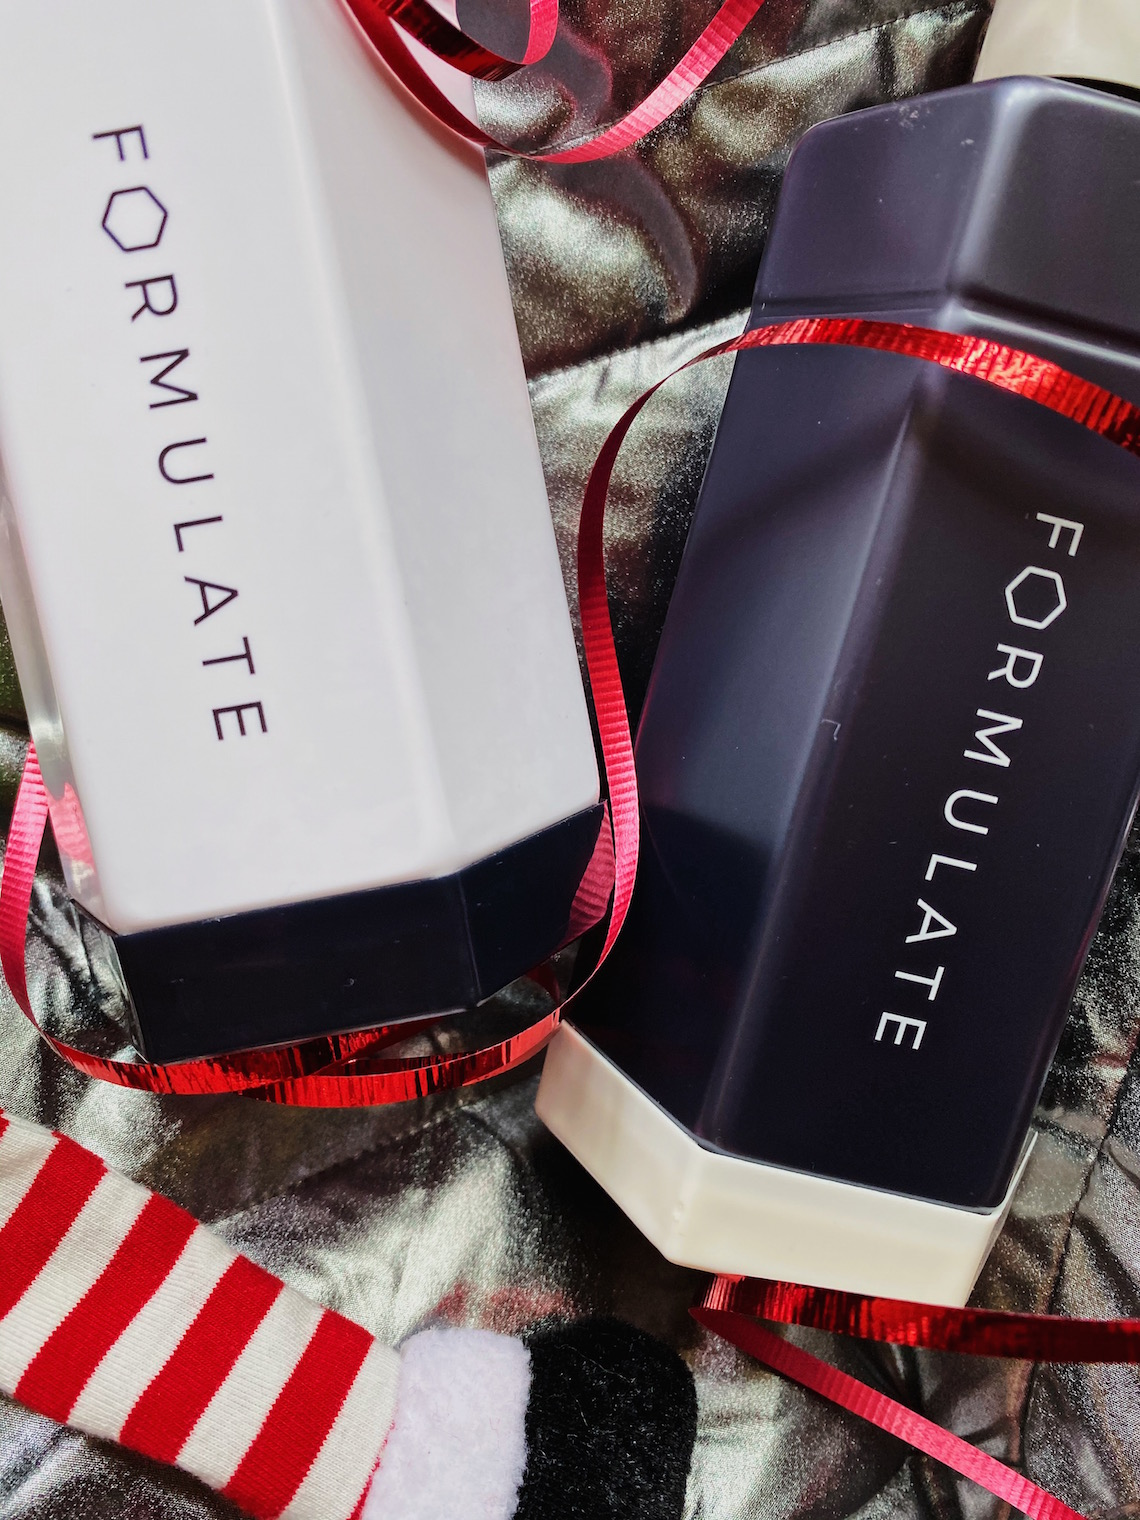 formulate-personalized shampoo and conditioner